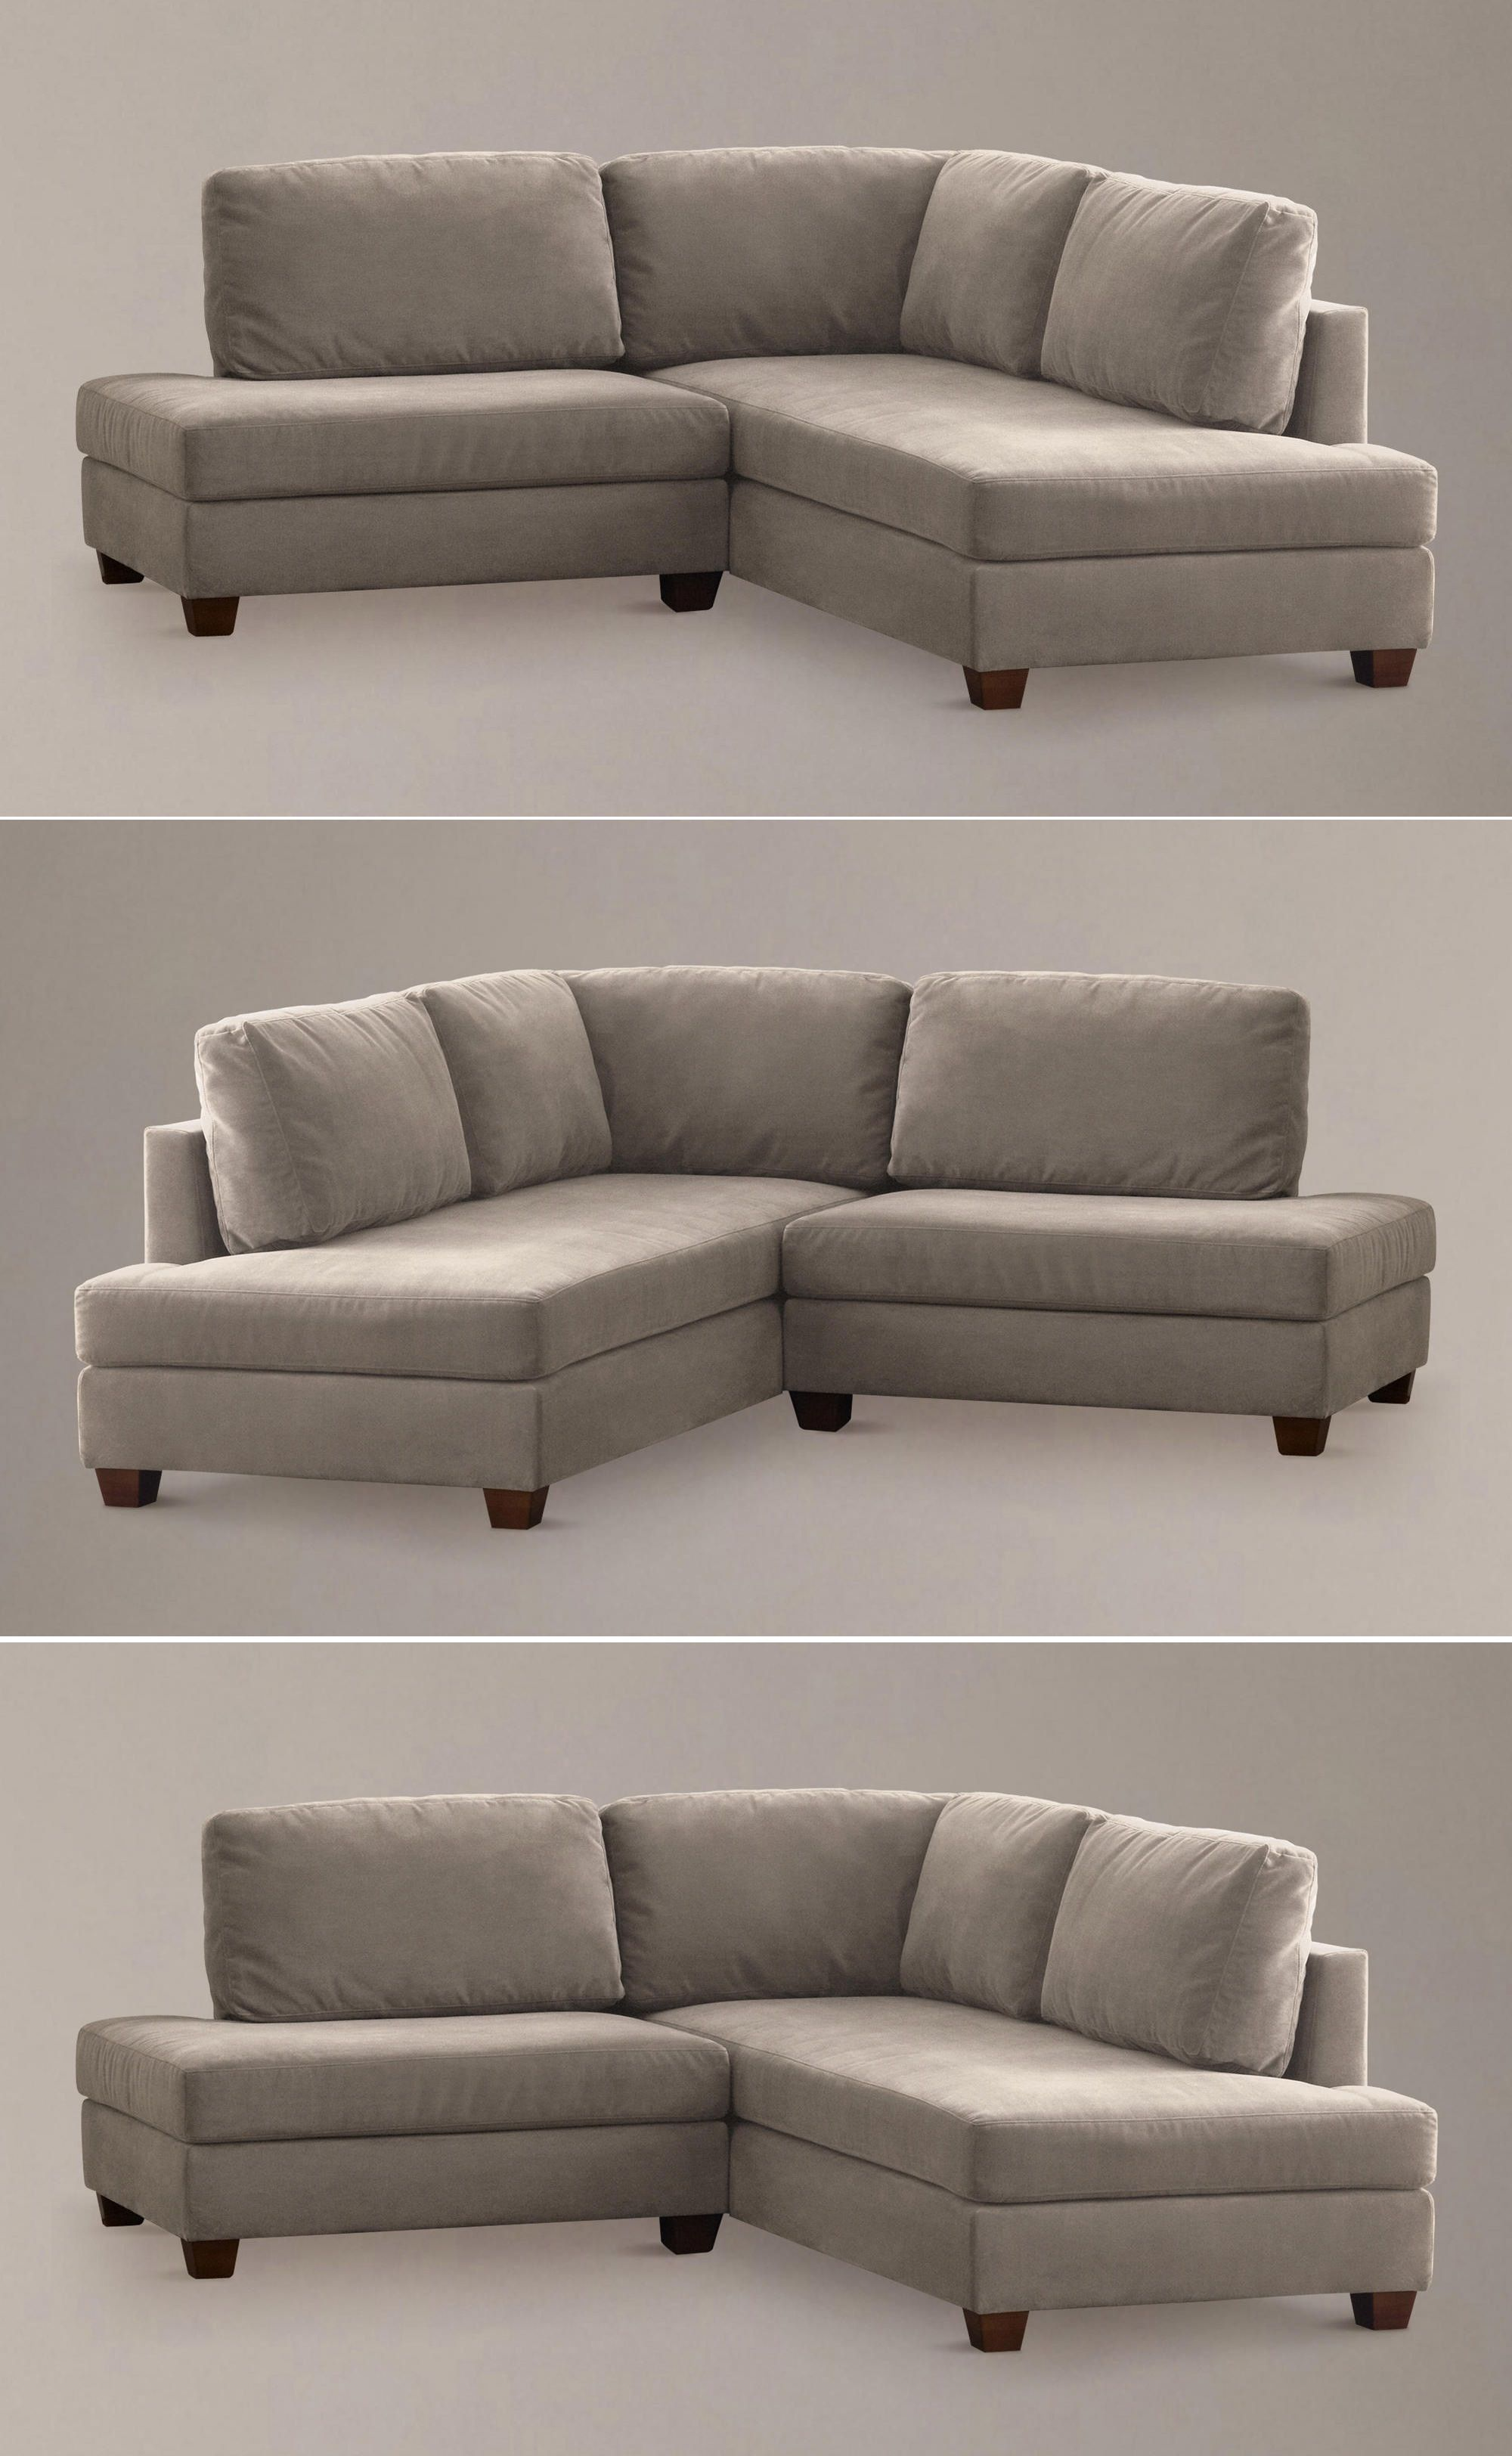 Https Www Cushionss Pingle Site Small Corner Sectional Sofa 2